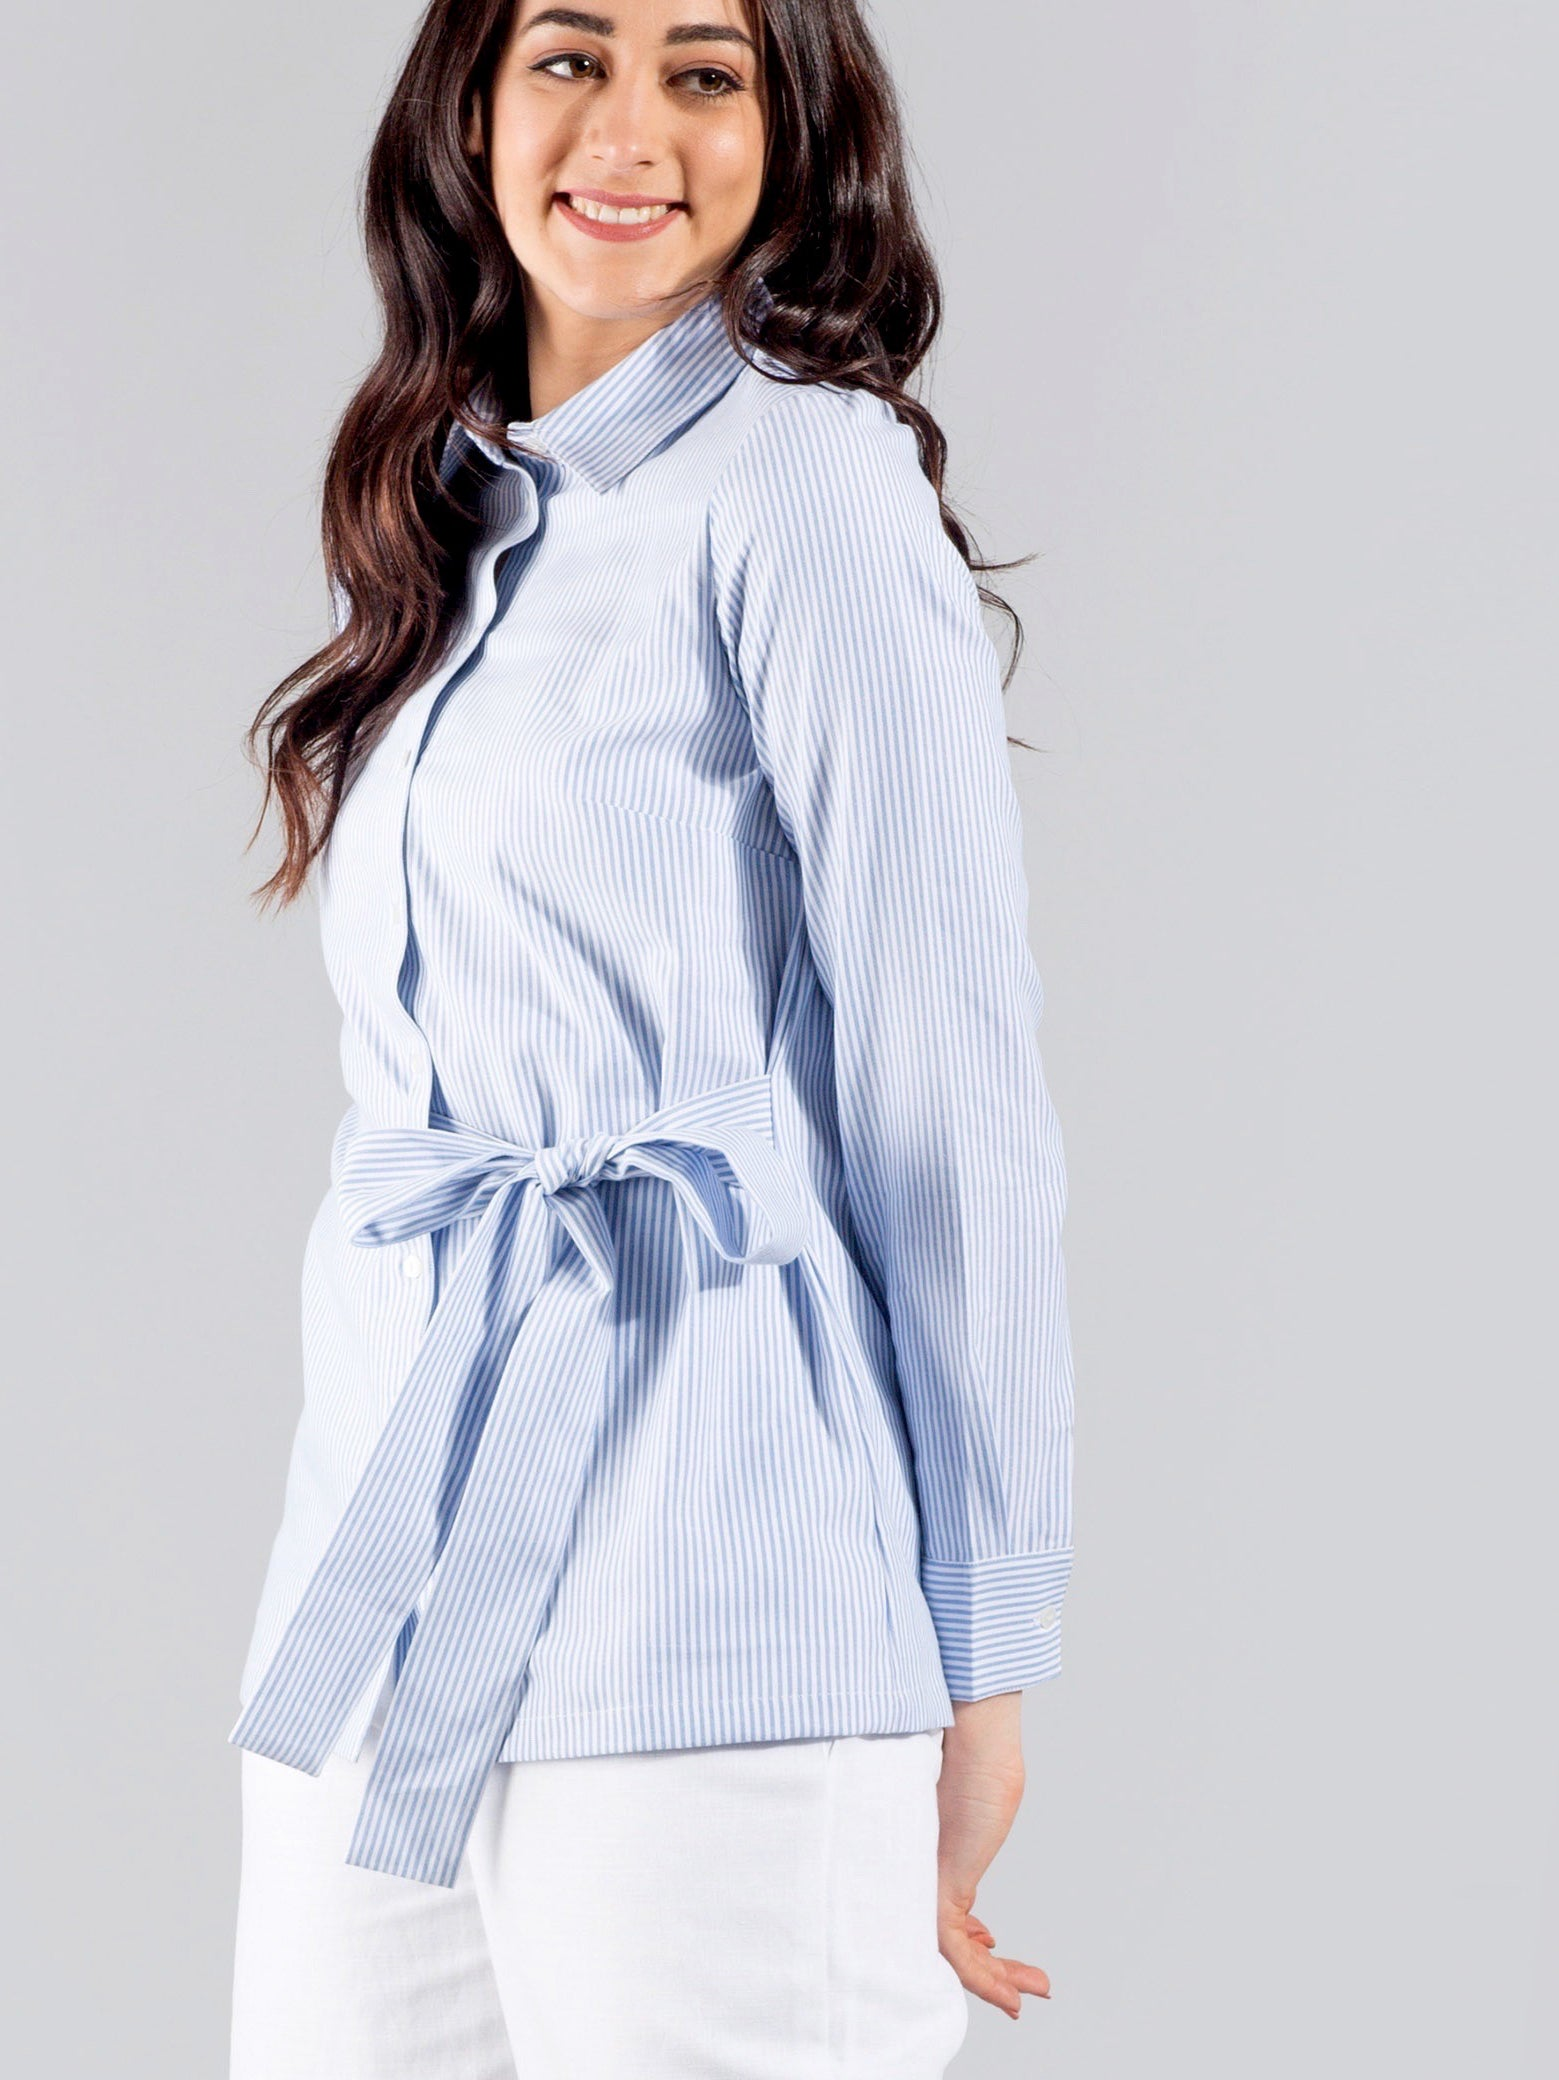 Classic Collar Striped Shirt With A Side Belt - Blue & White